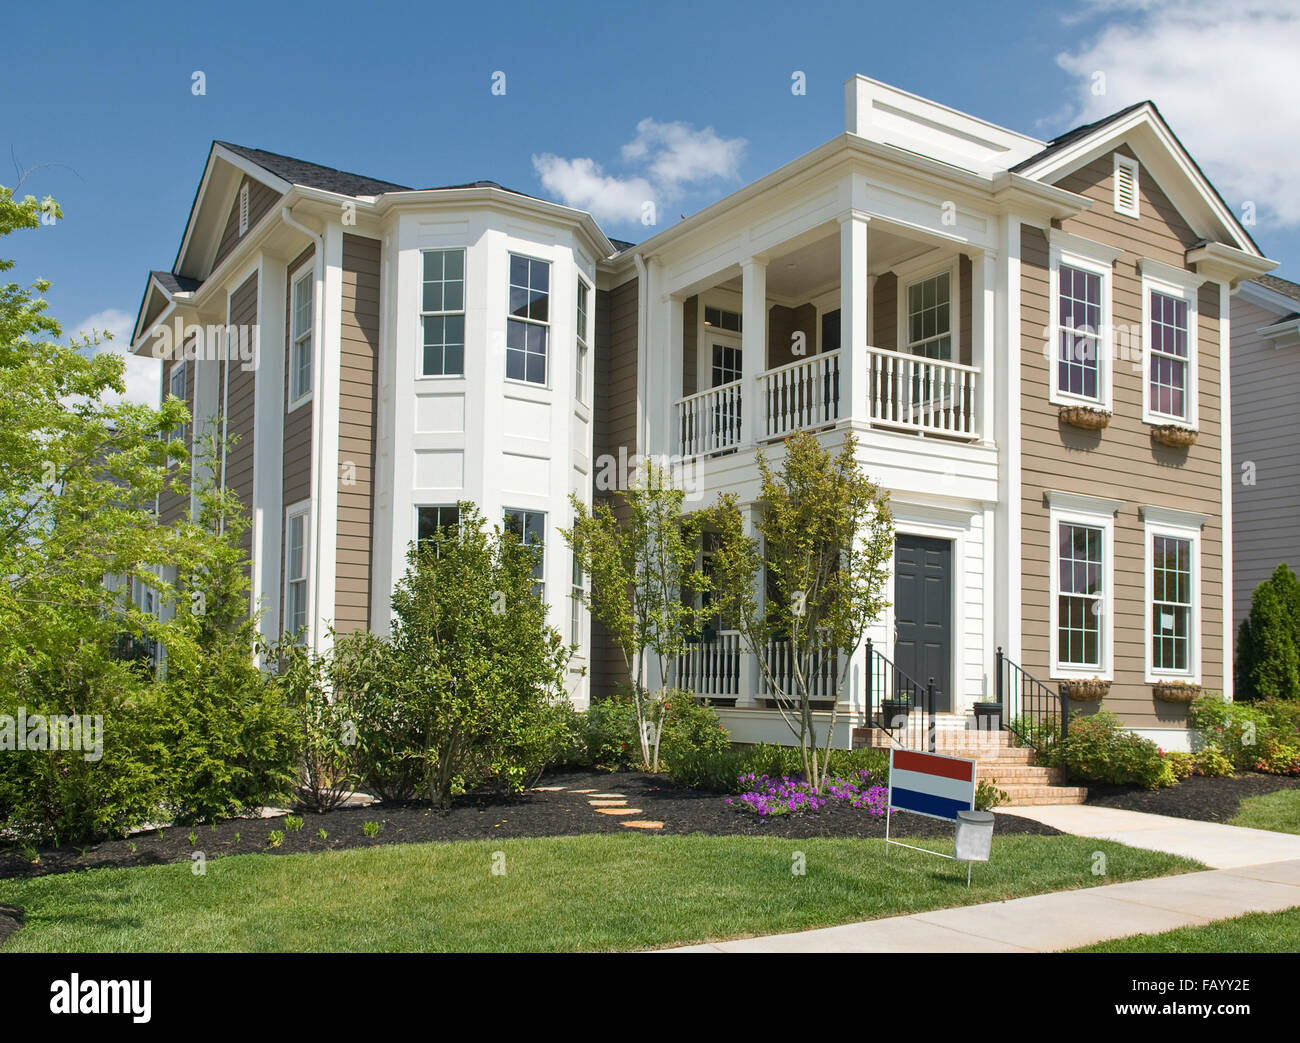 New Two Story Luxury Home - Stock Image